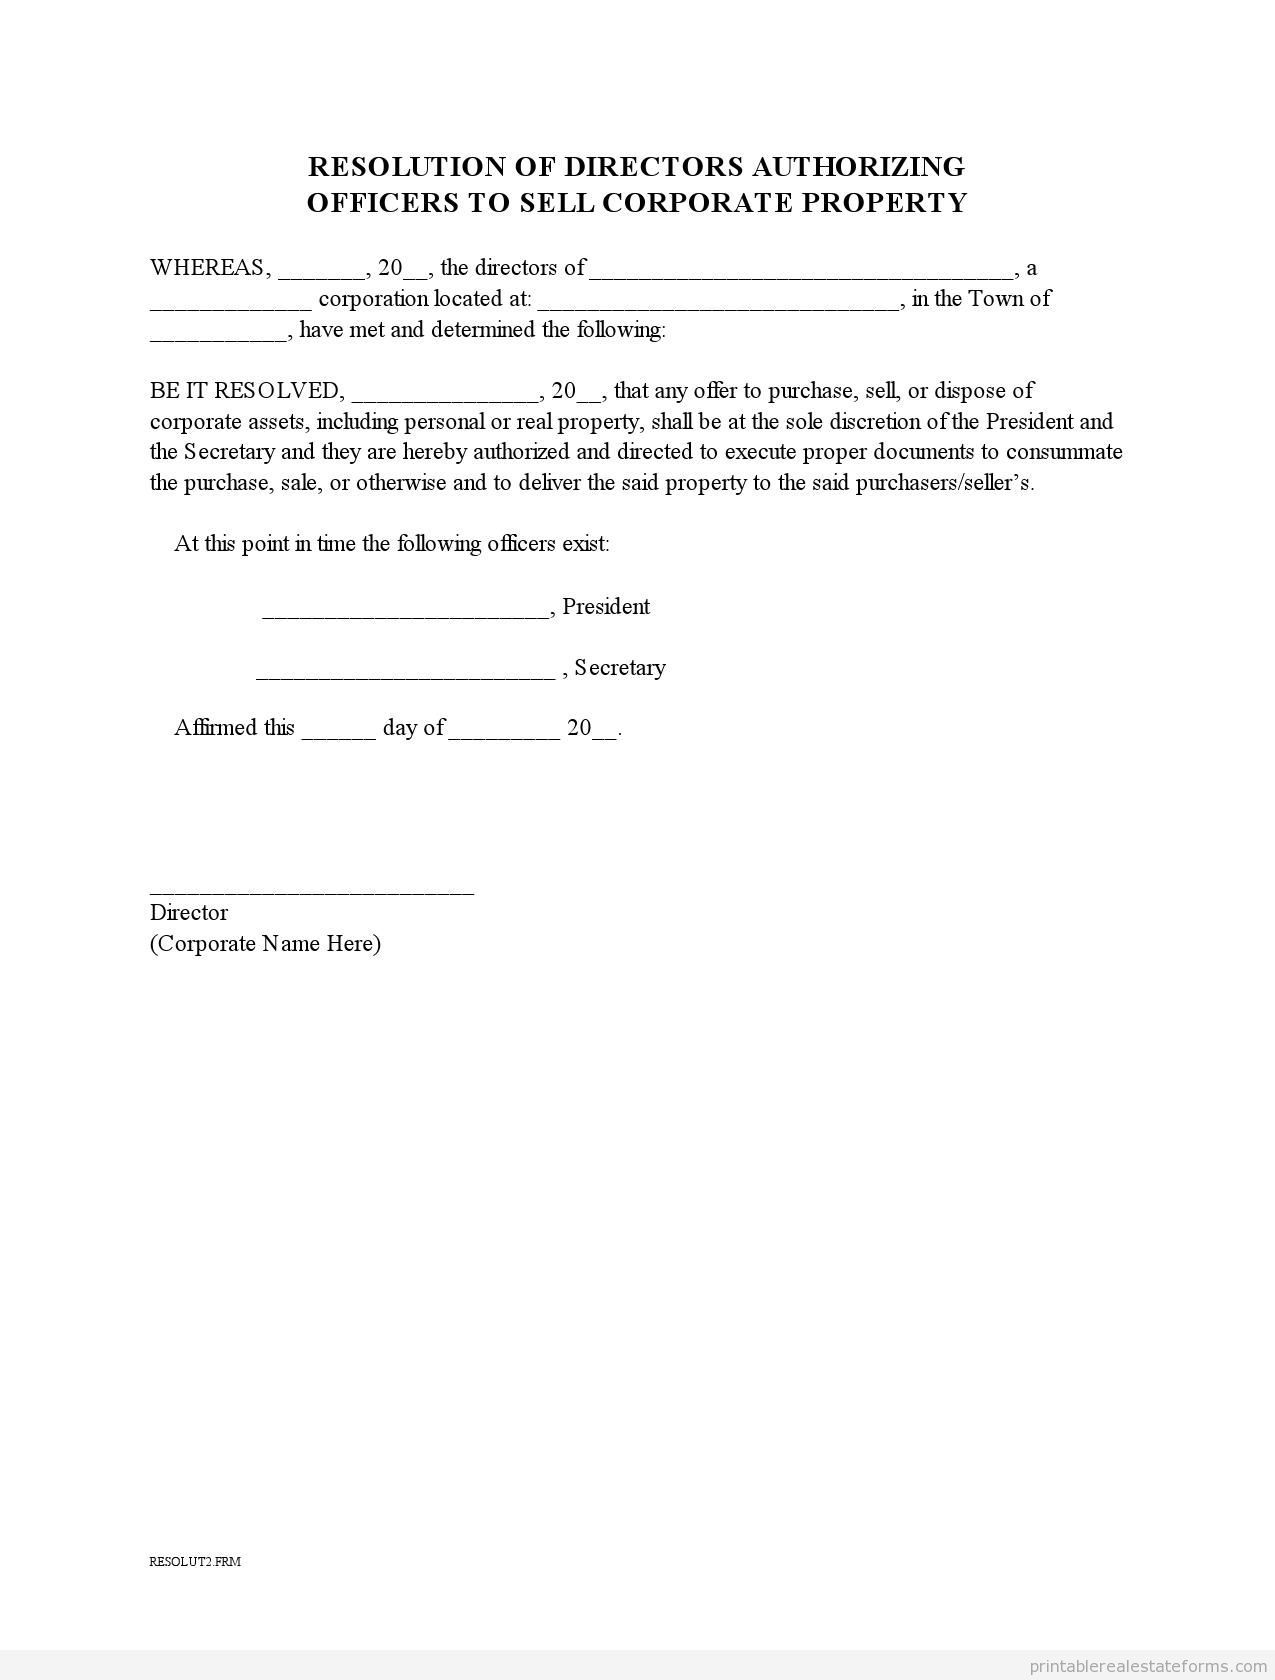 Sample Printable Corporate Resolution To Sell Property Form